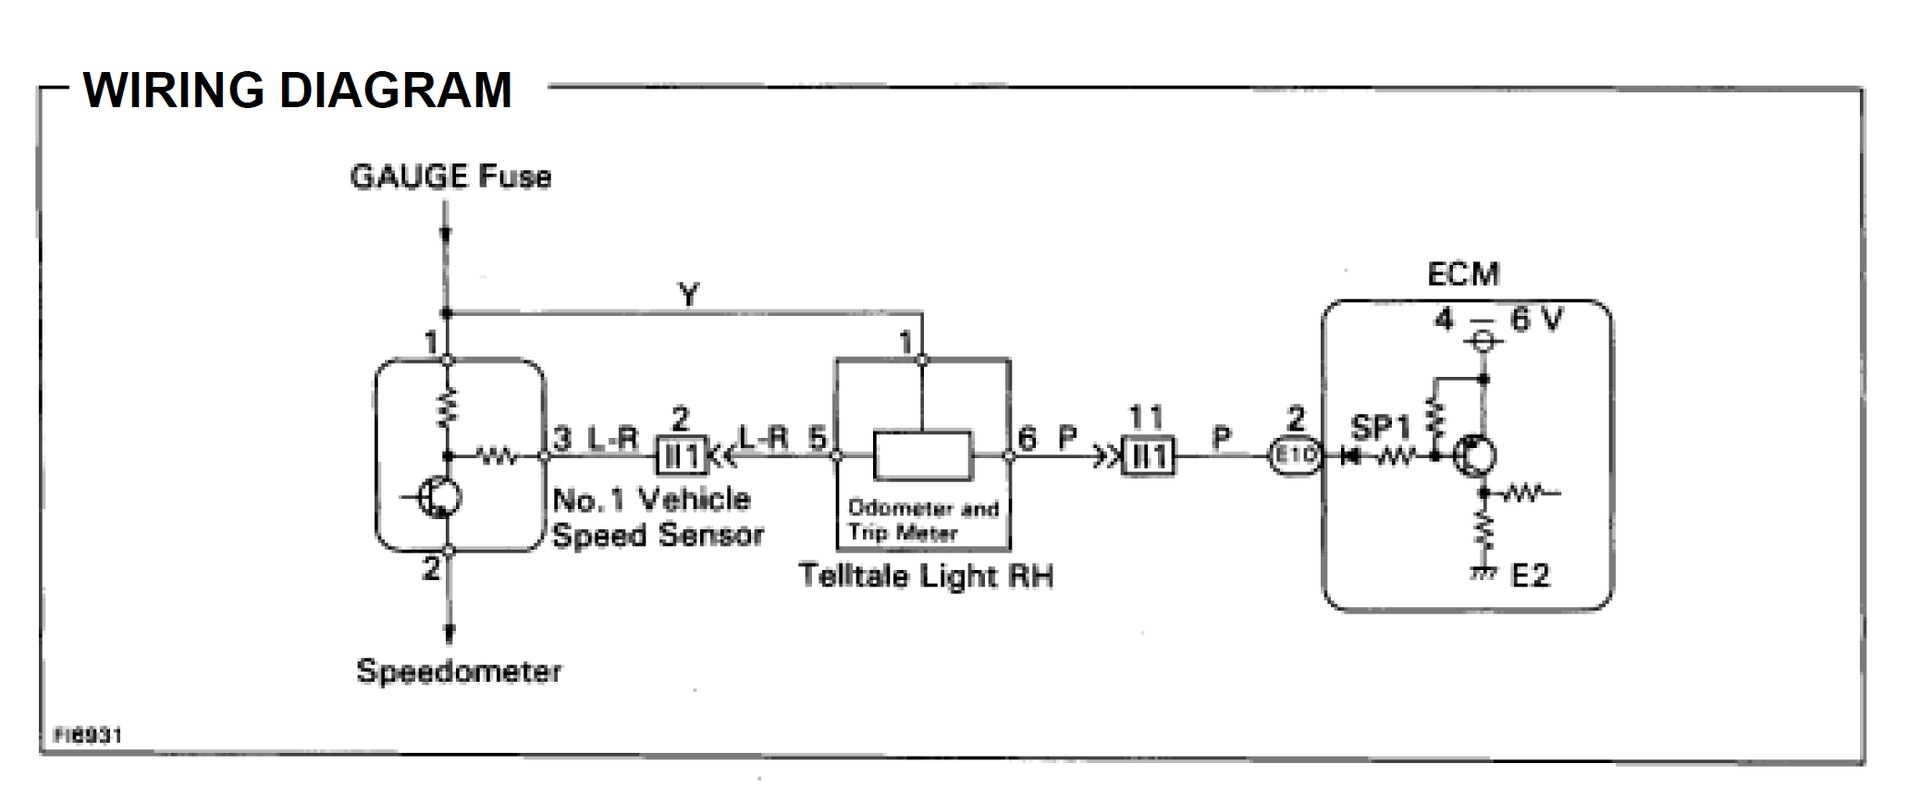 Sdometer Repair   Supra Forums on how cable works diagram, electronic speedometer wiring diagram, barometer diagram, wheels diagram, headlight diagram, sensor diagram, vdo speedometer wiring diagram, fuel diagram, power diagram, make diagram, time diagram, computer circuit board diagram, instrumentation diagram, abs diagram, radio diagram, model diagram, ignition diagram, truck peterbilt 379 wiring diagram, speed diagram, voltmeter diagram,